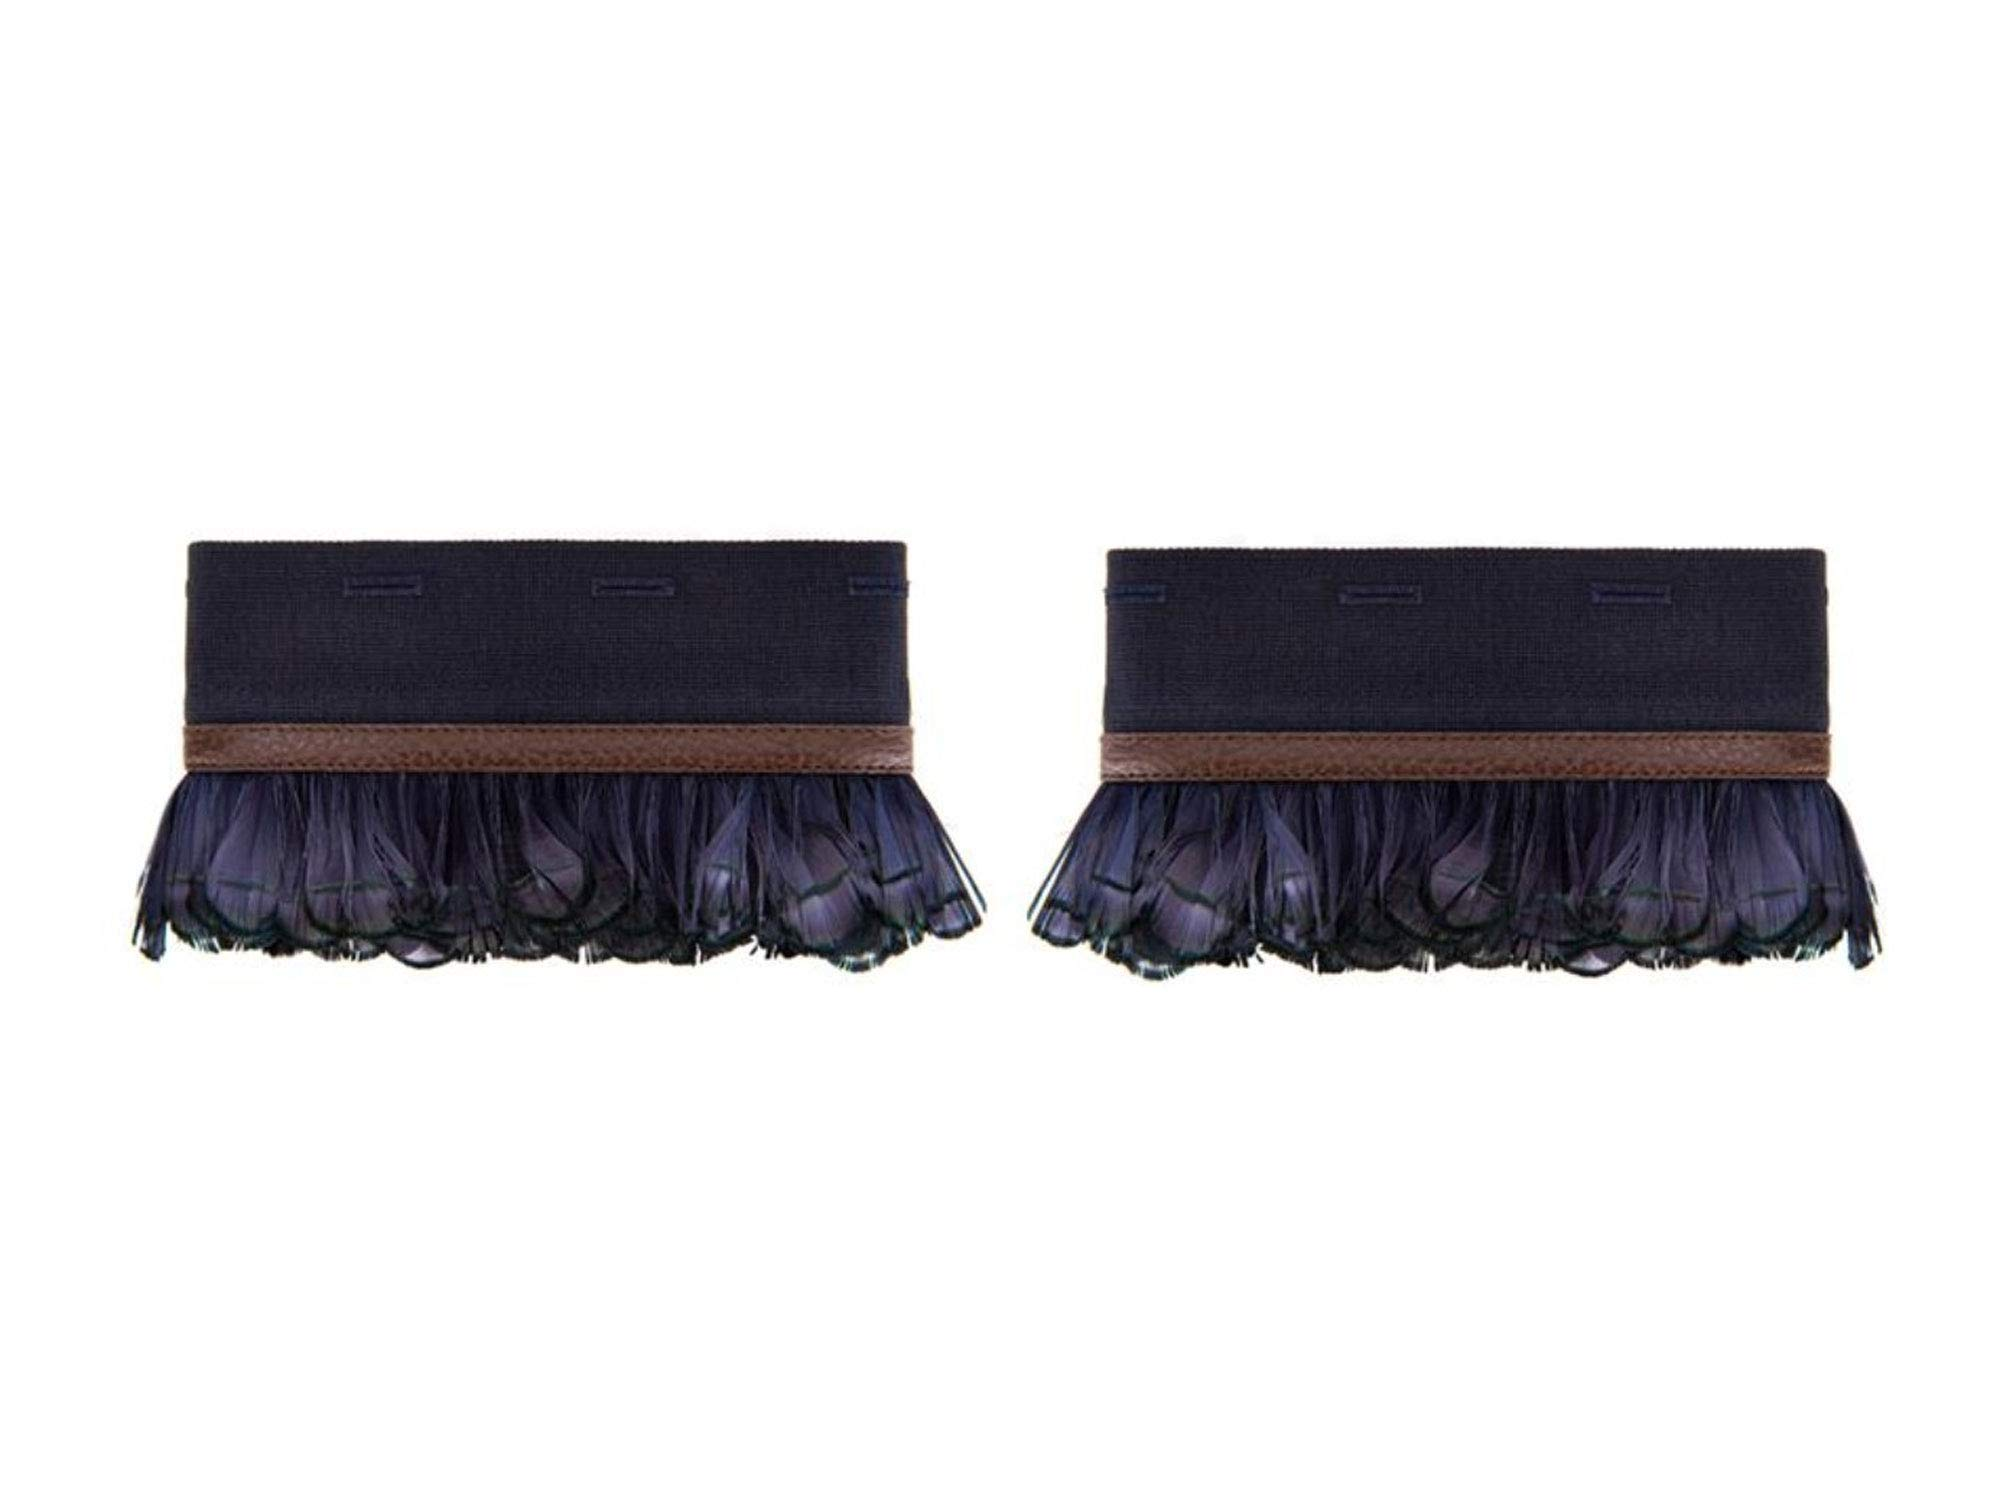 'S Max Mara Women's Harlem Pheasant Feather Cuffs One Size Navy Blue